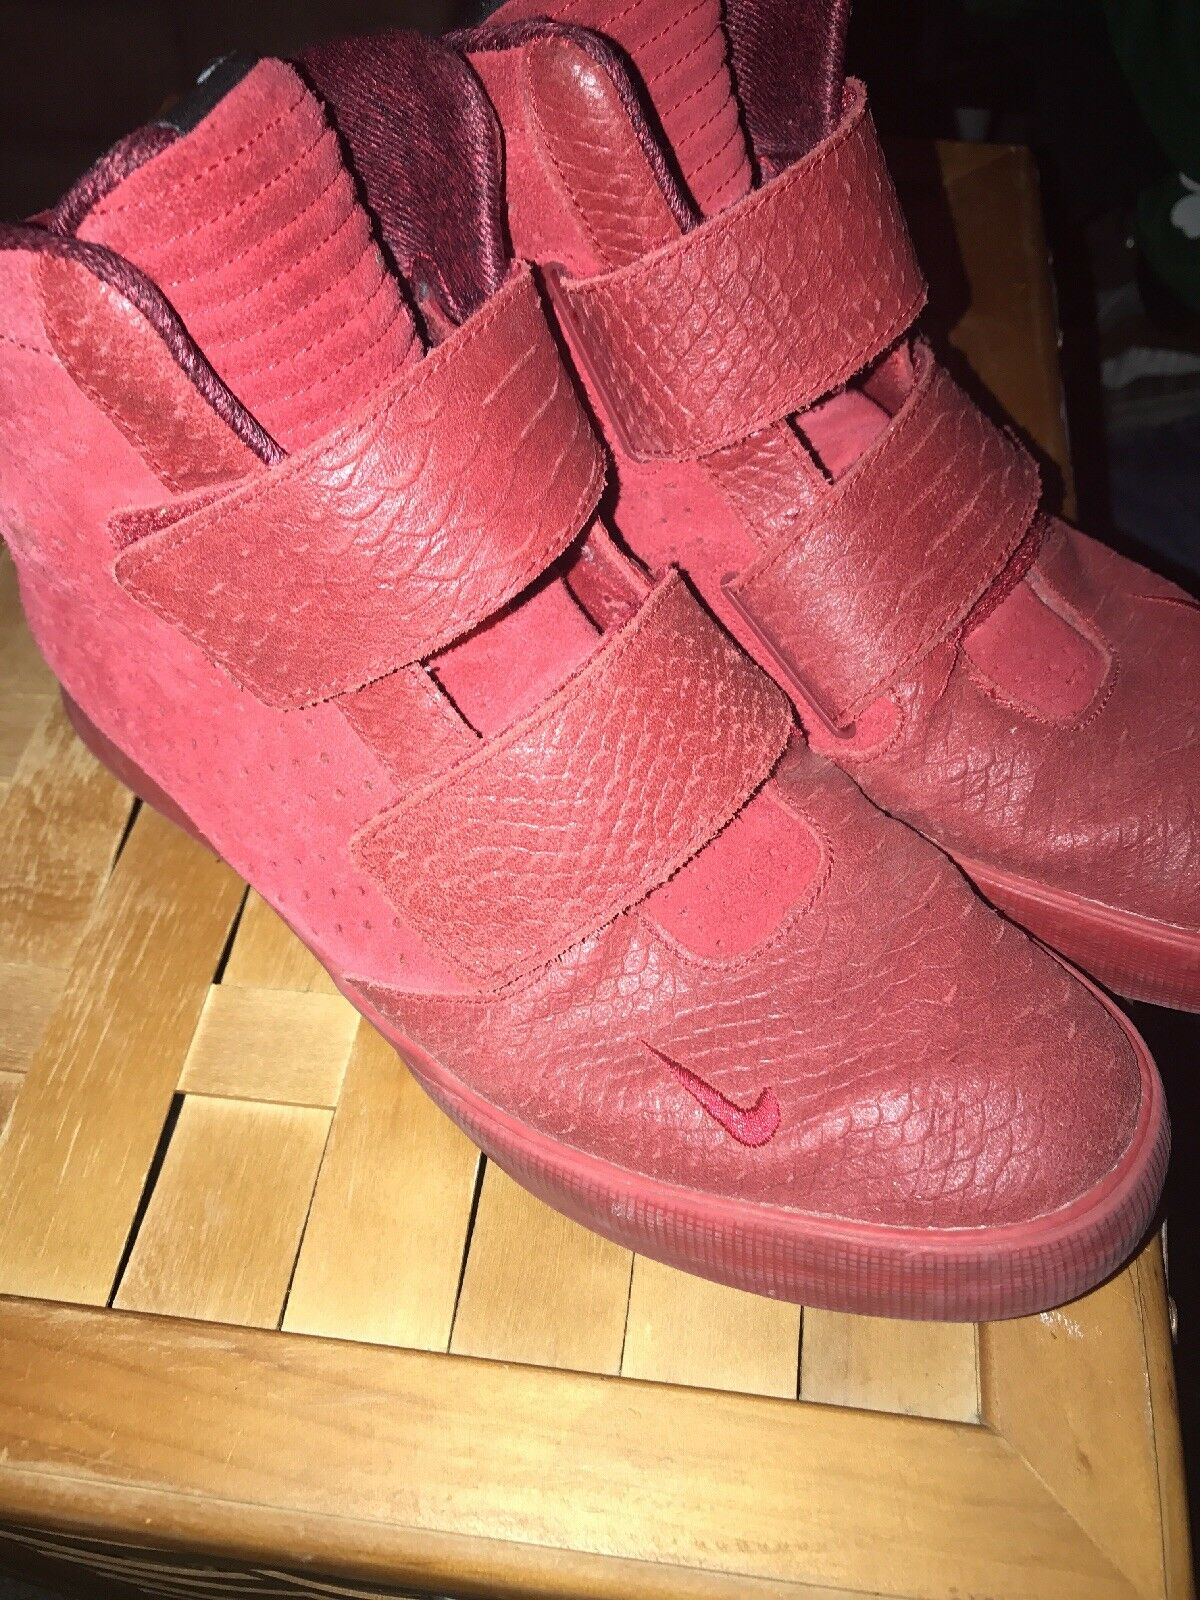 Nike Flystepper 2K3 Premium Gym Red October Yeezy Men's Size 10.5